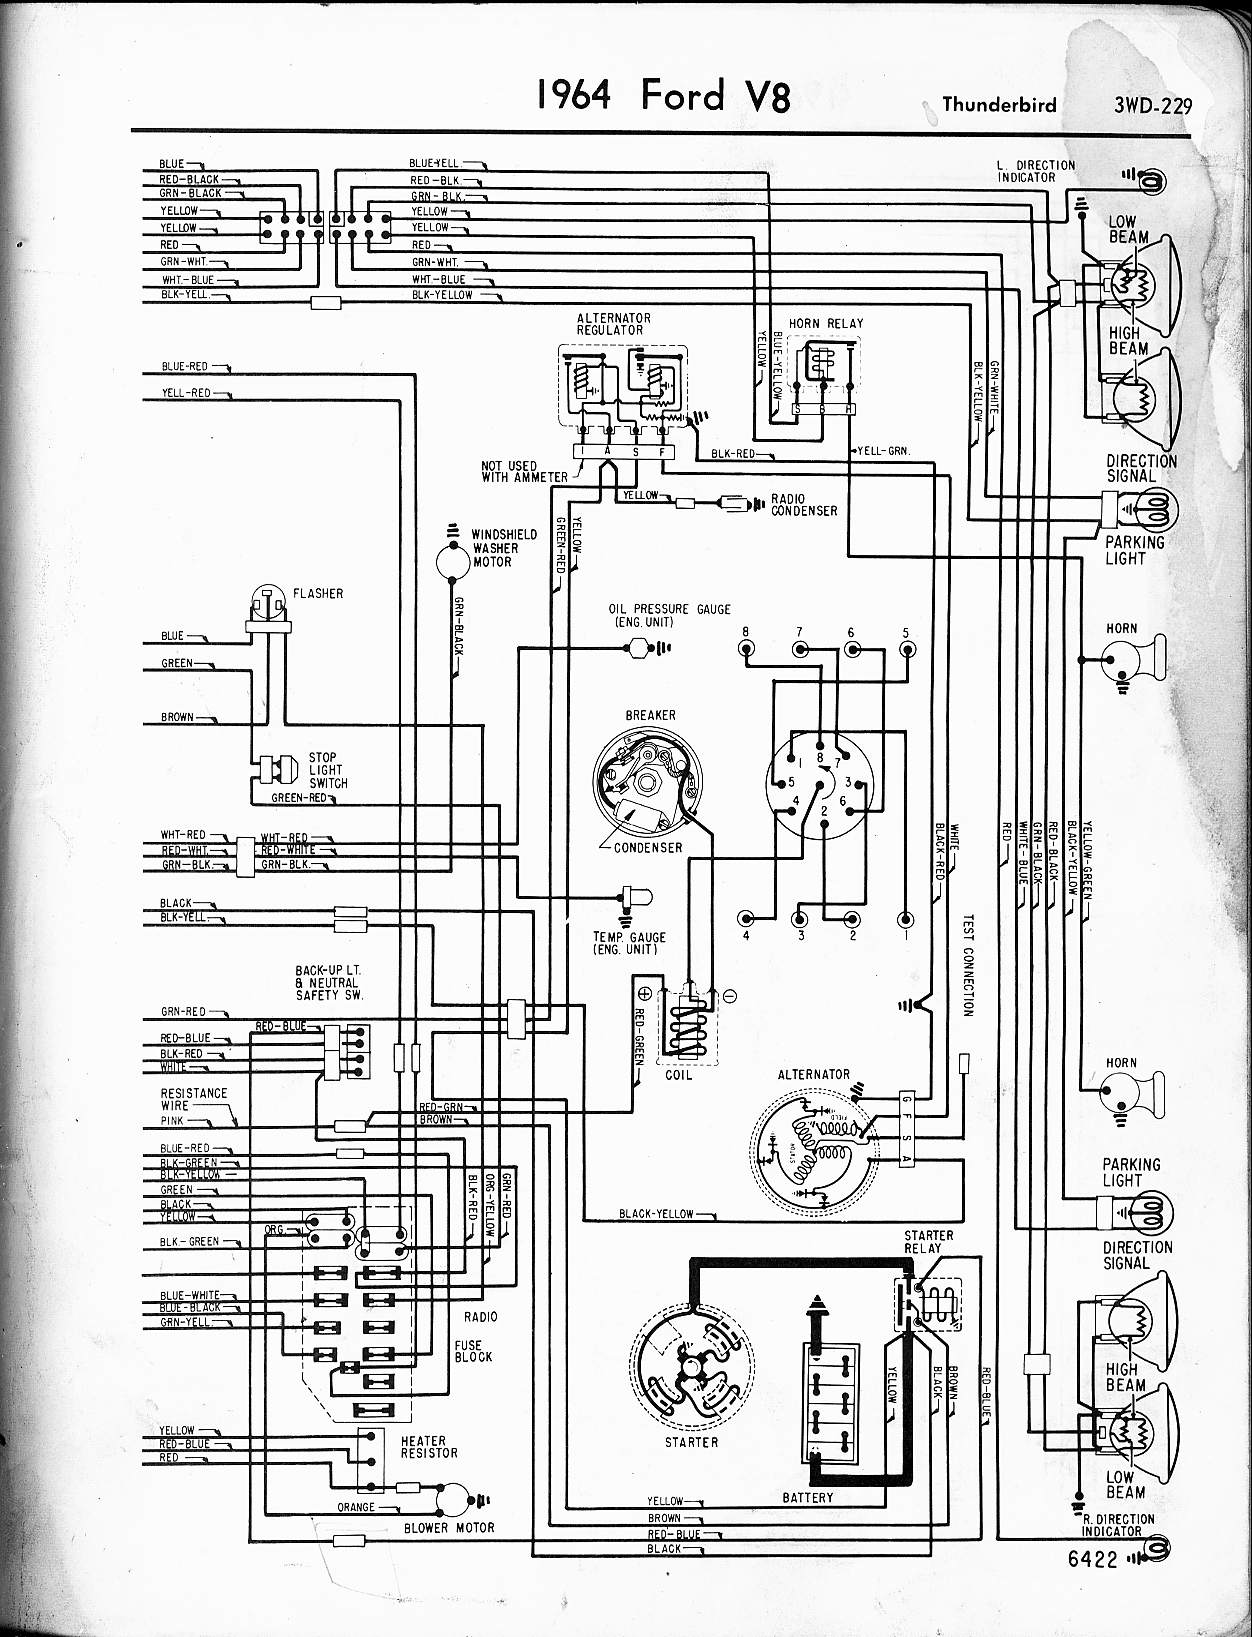 1964 ford thunderbird wiring diagram YiPZEhW 1987 ford thunderbird wiring diagram image details Simple Wiring Schematics at virtualis.co